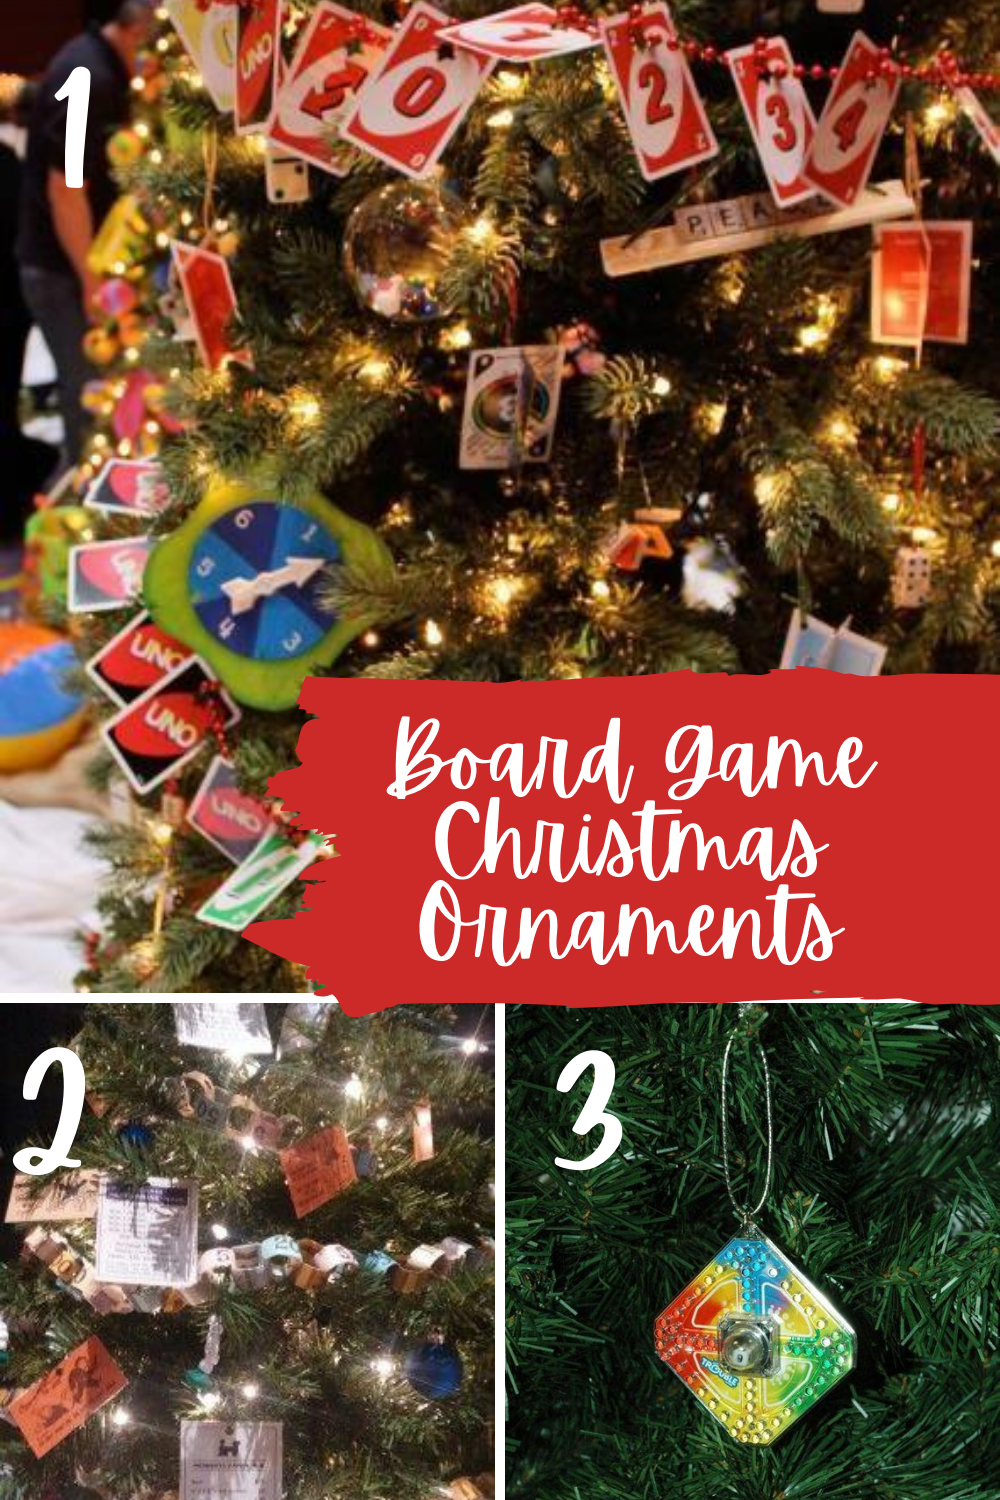 Board Game Christmas Ornaments